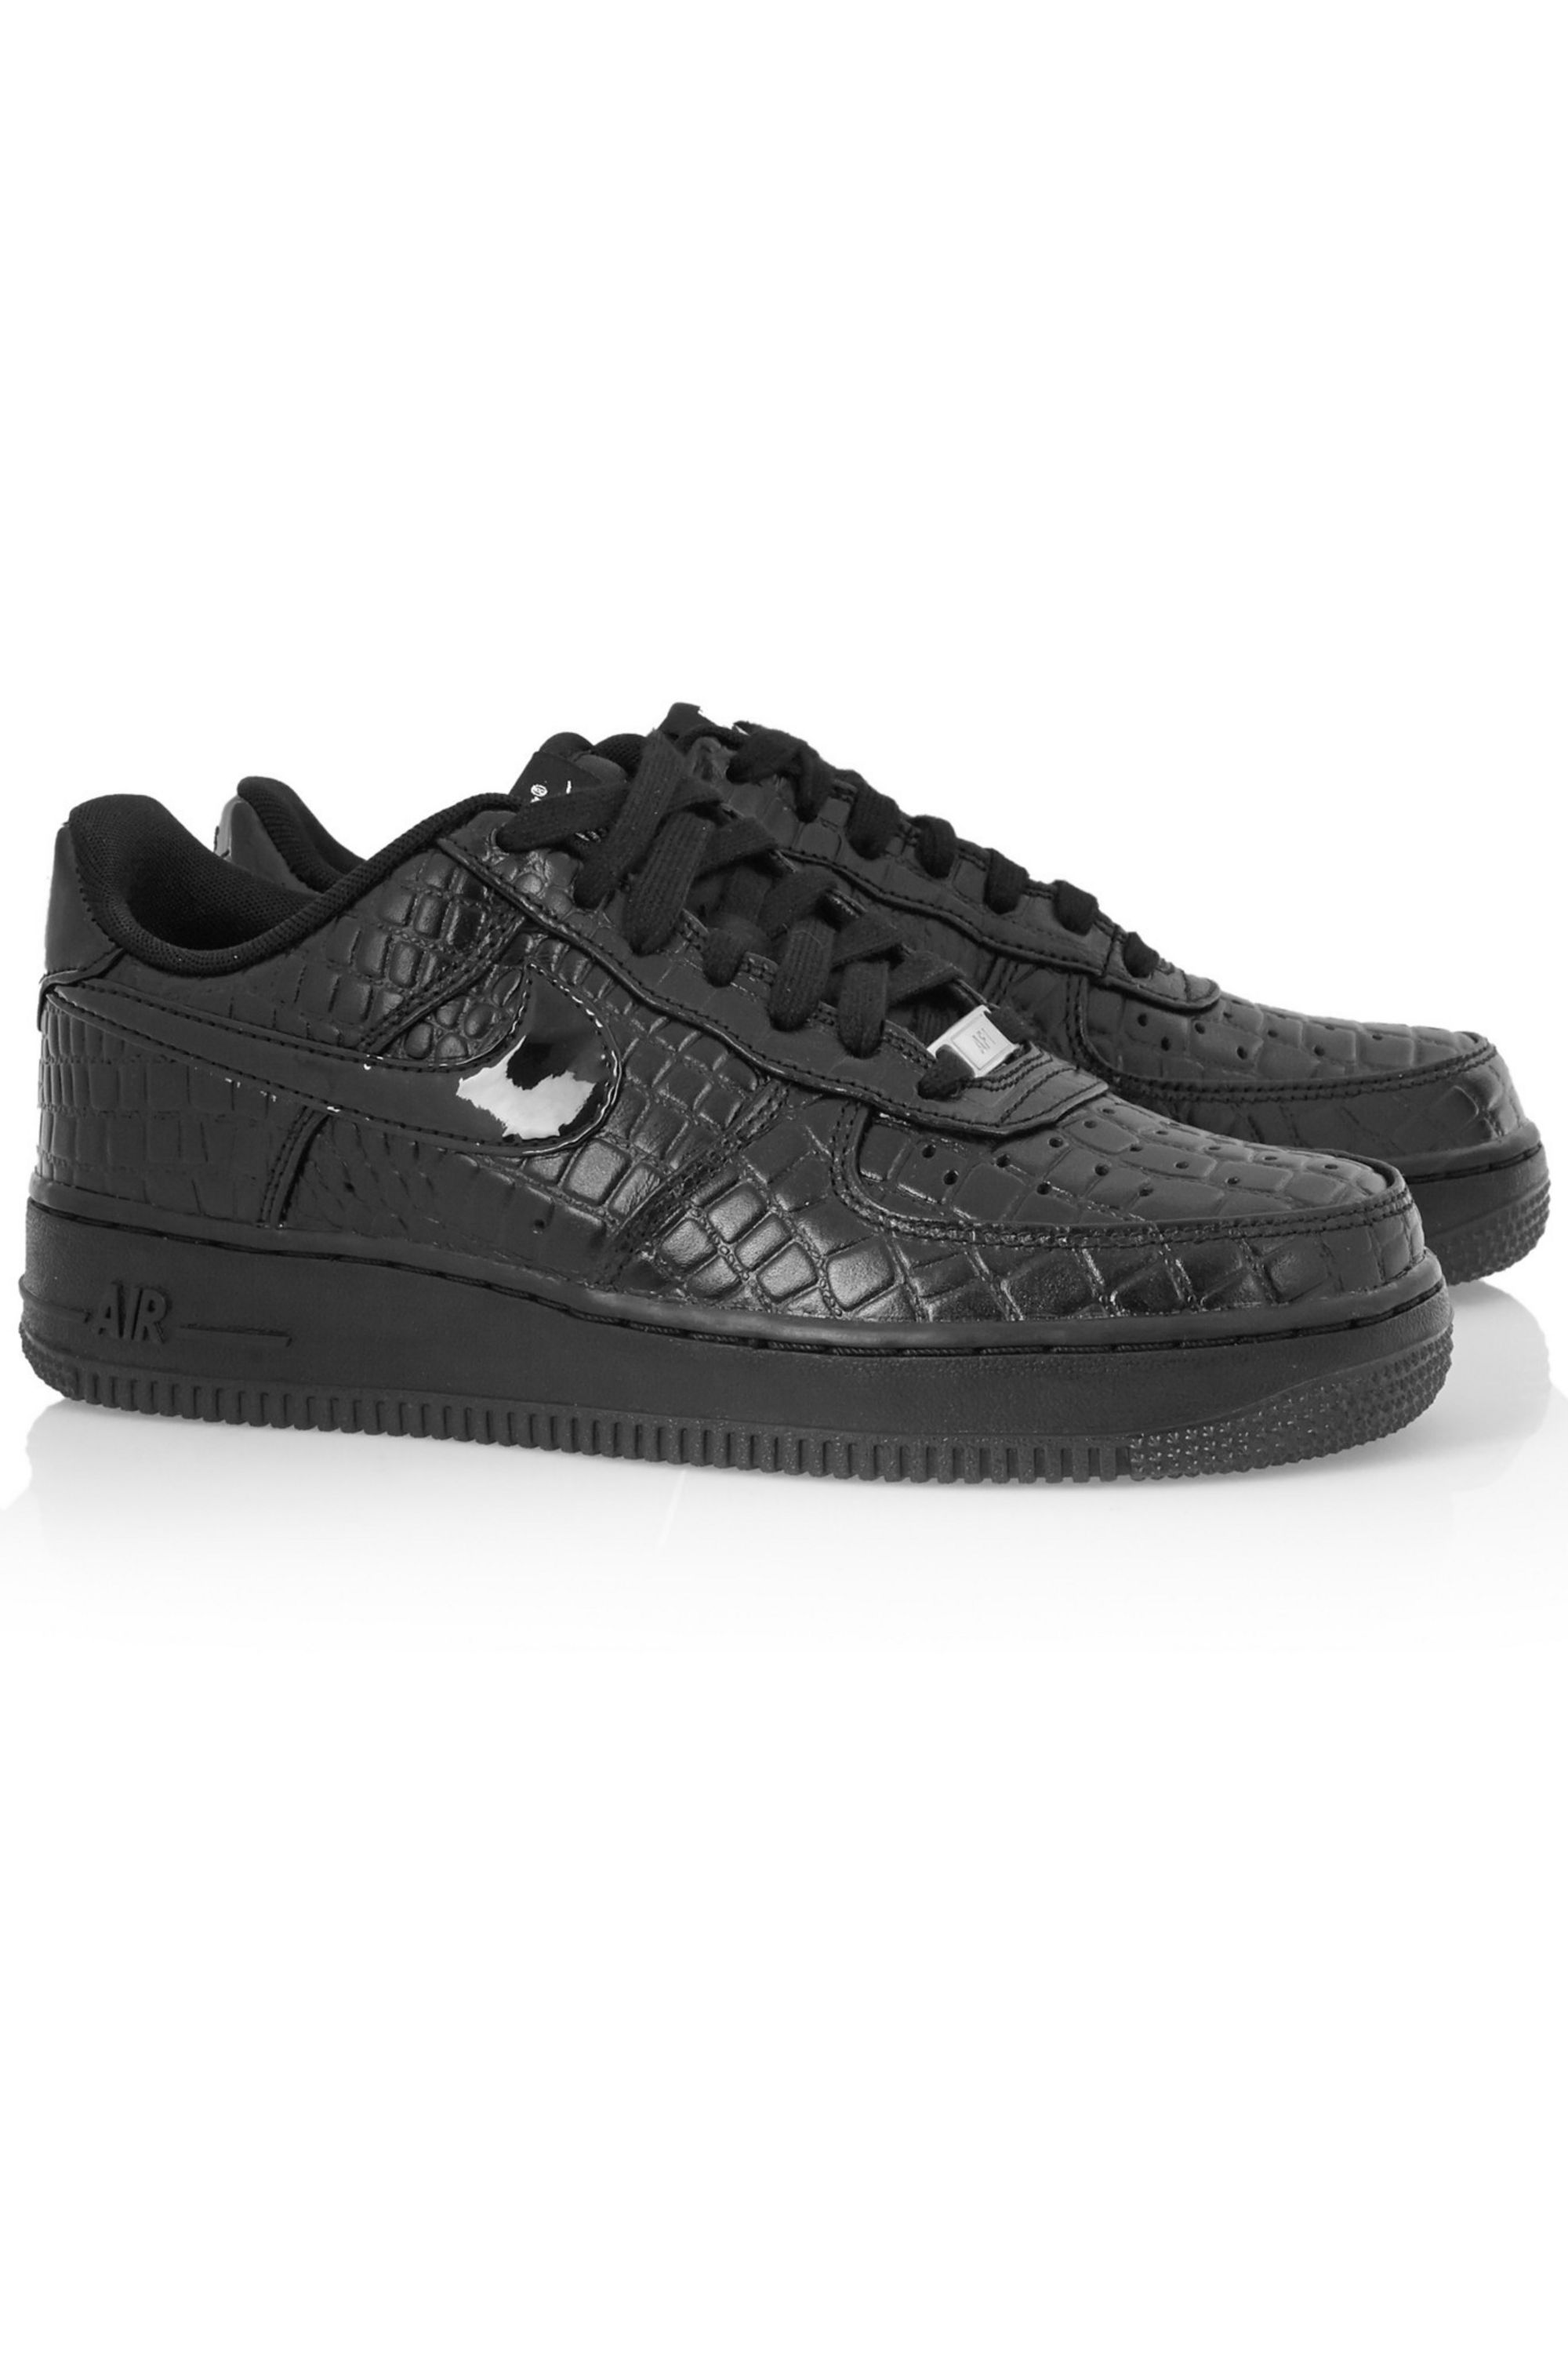 Nike Air Force 1 croc-effect leather sneakers